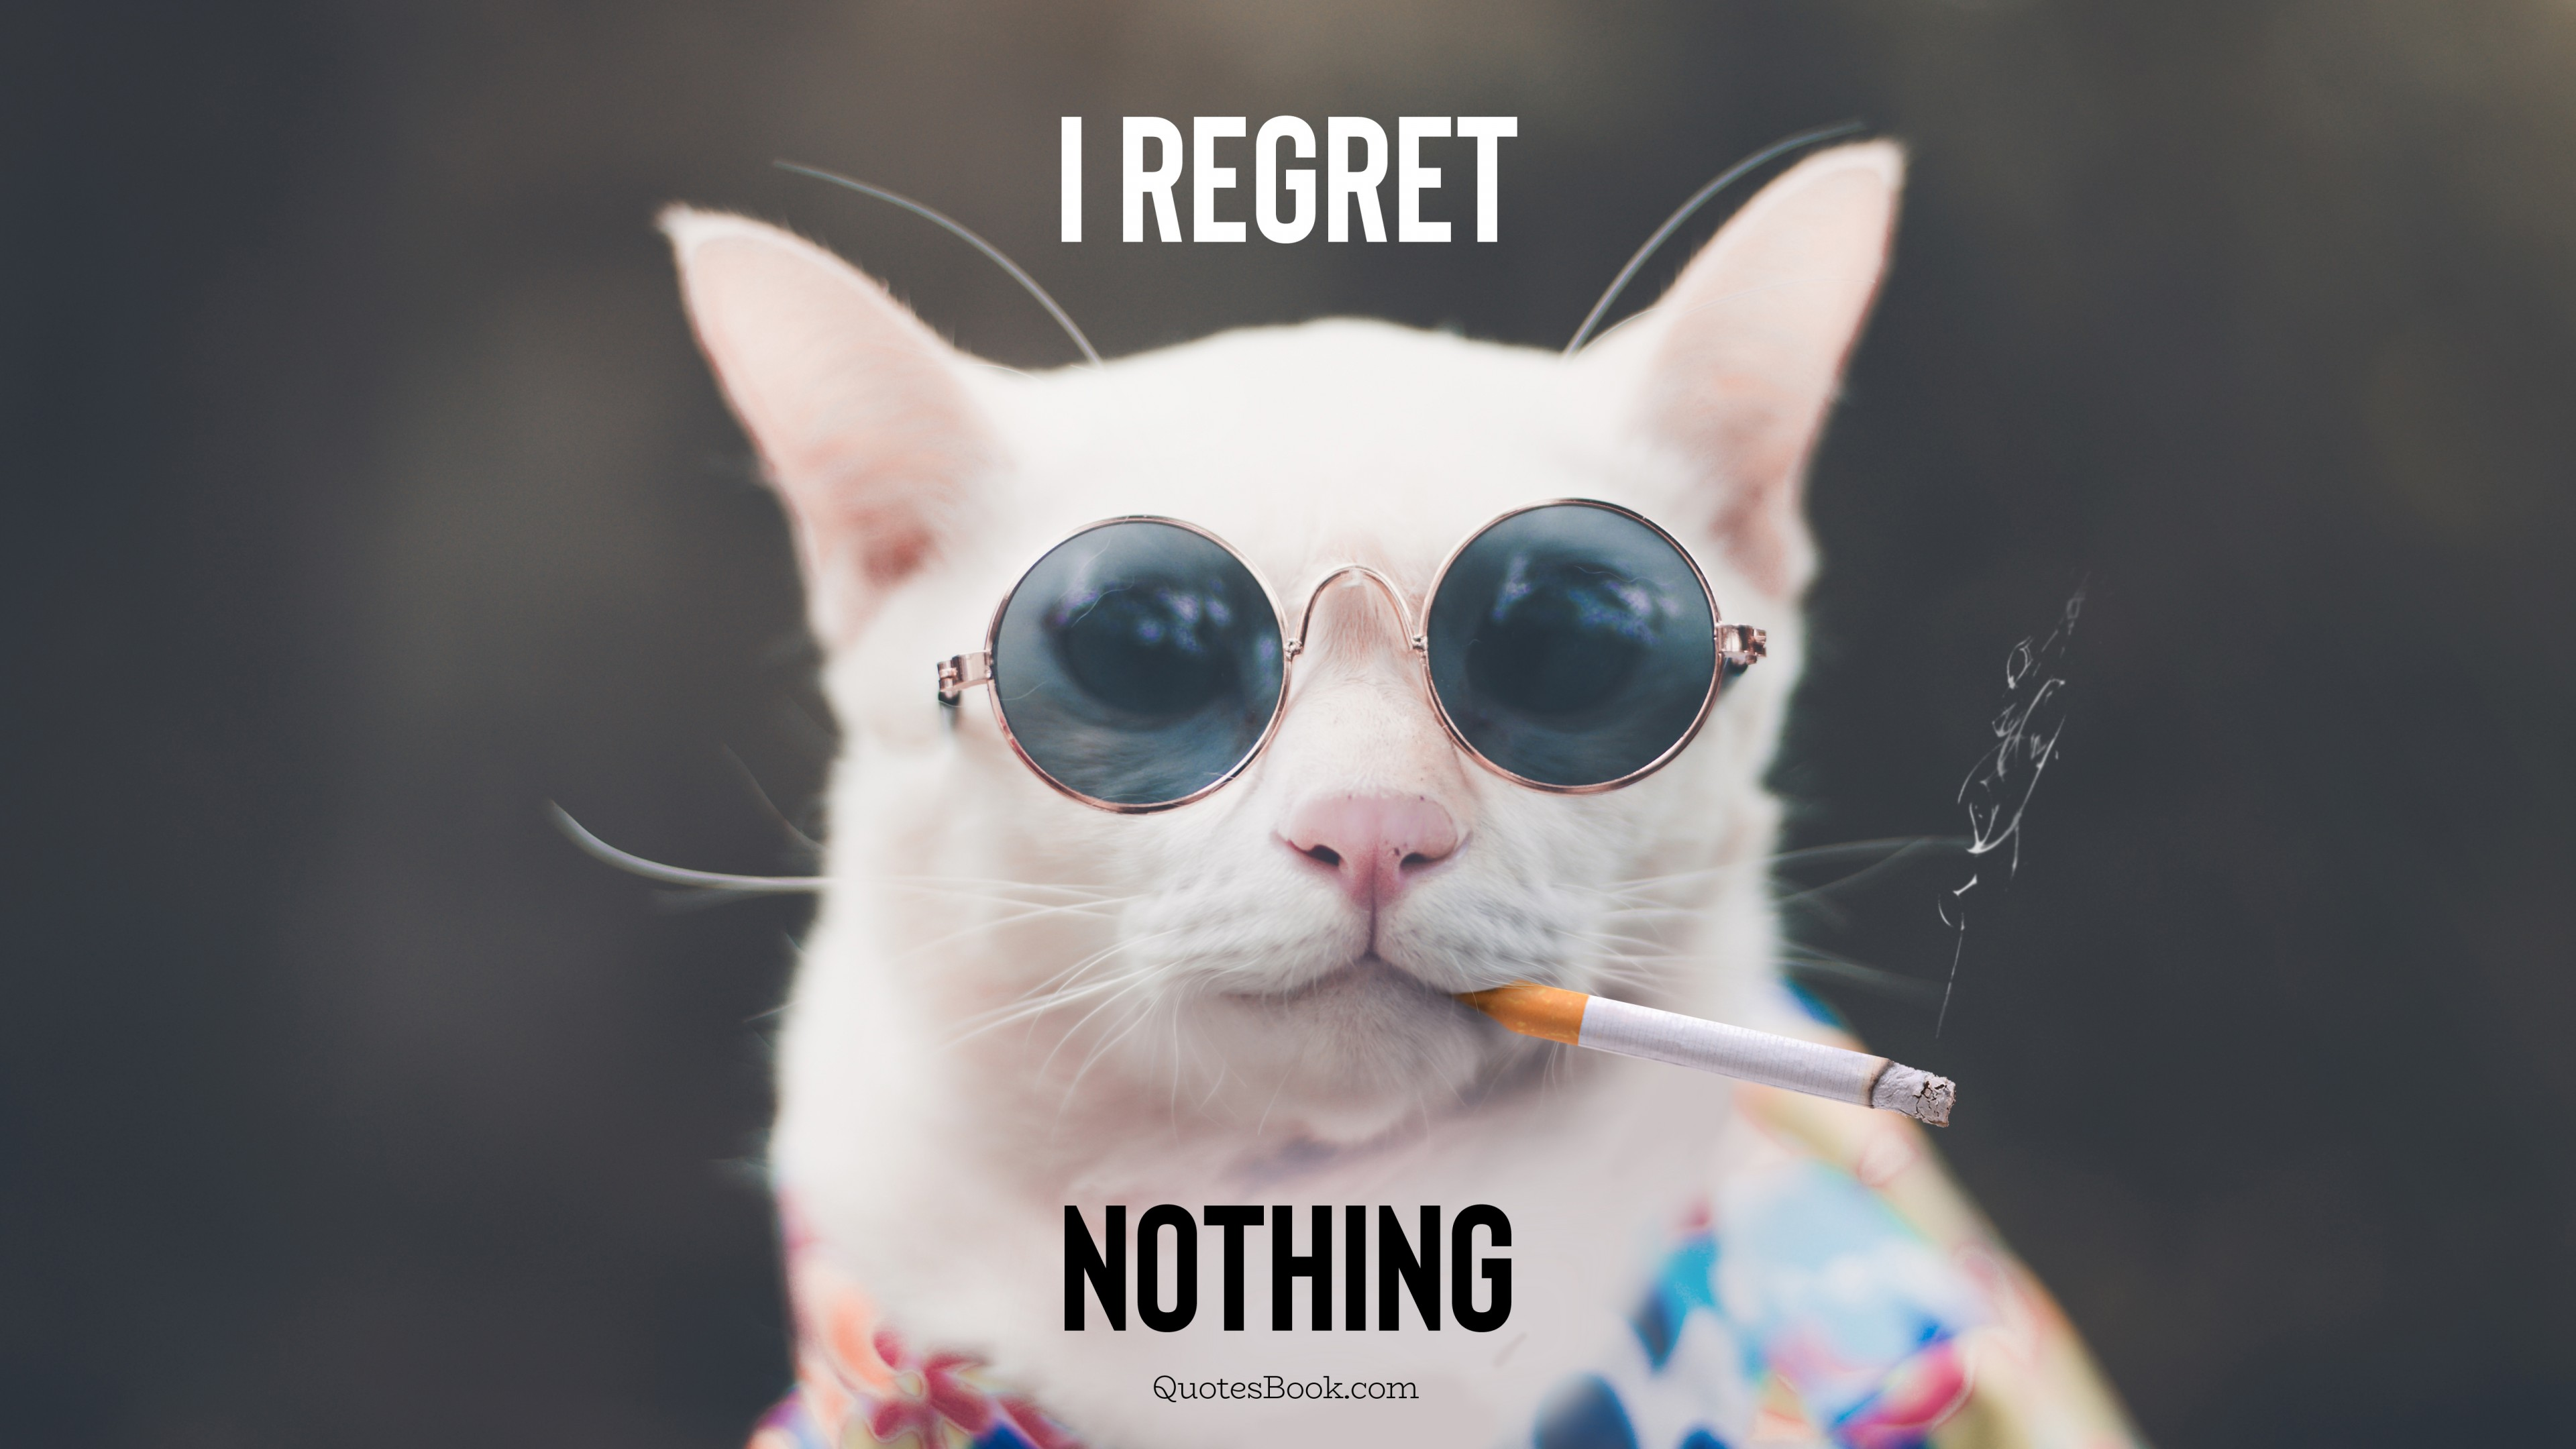 I Regret Nothing Quotesbook